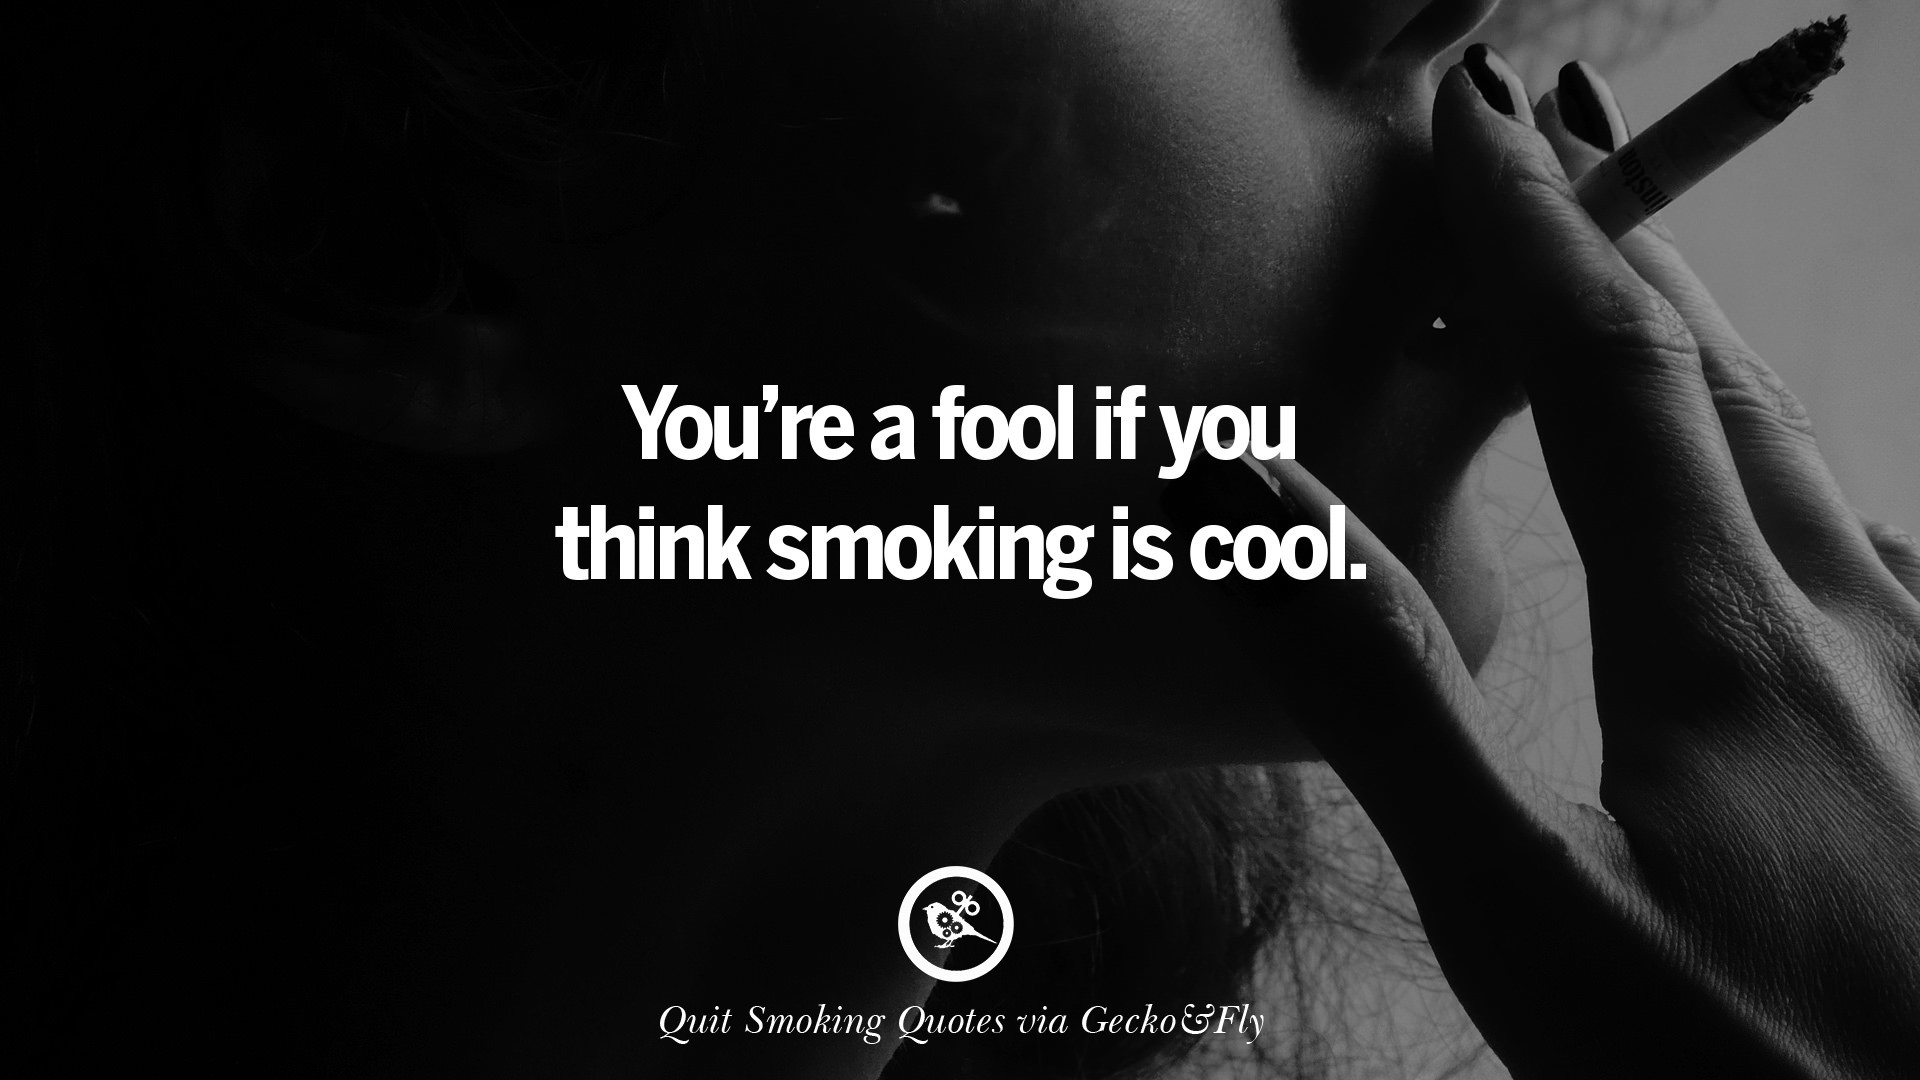 1920x1080 You're a fool if you think smoking is cool.